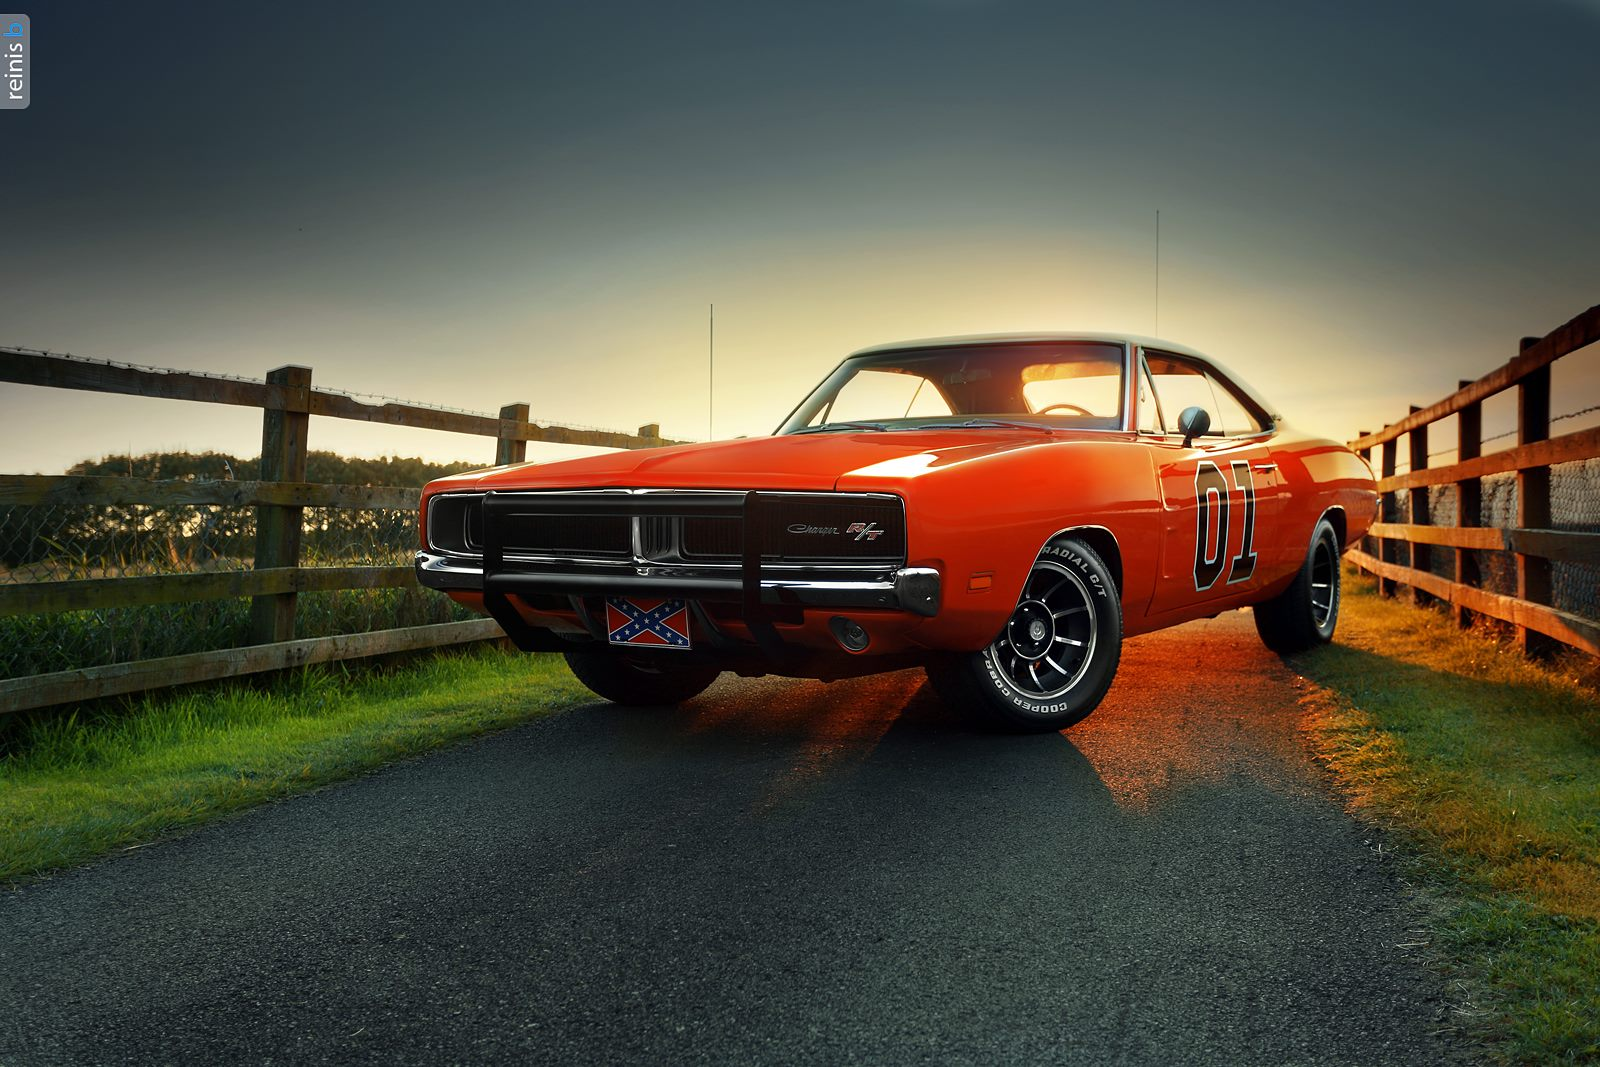 Stunning General Lee Dodge Charger R/T Photoshoot! - GTspirit